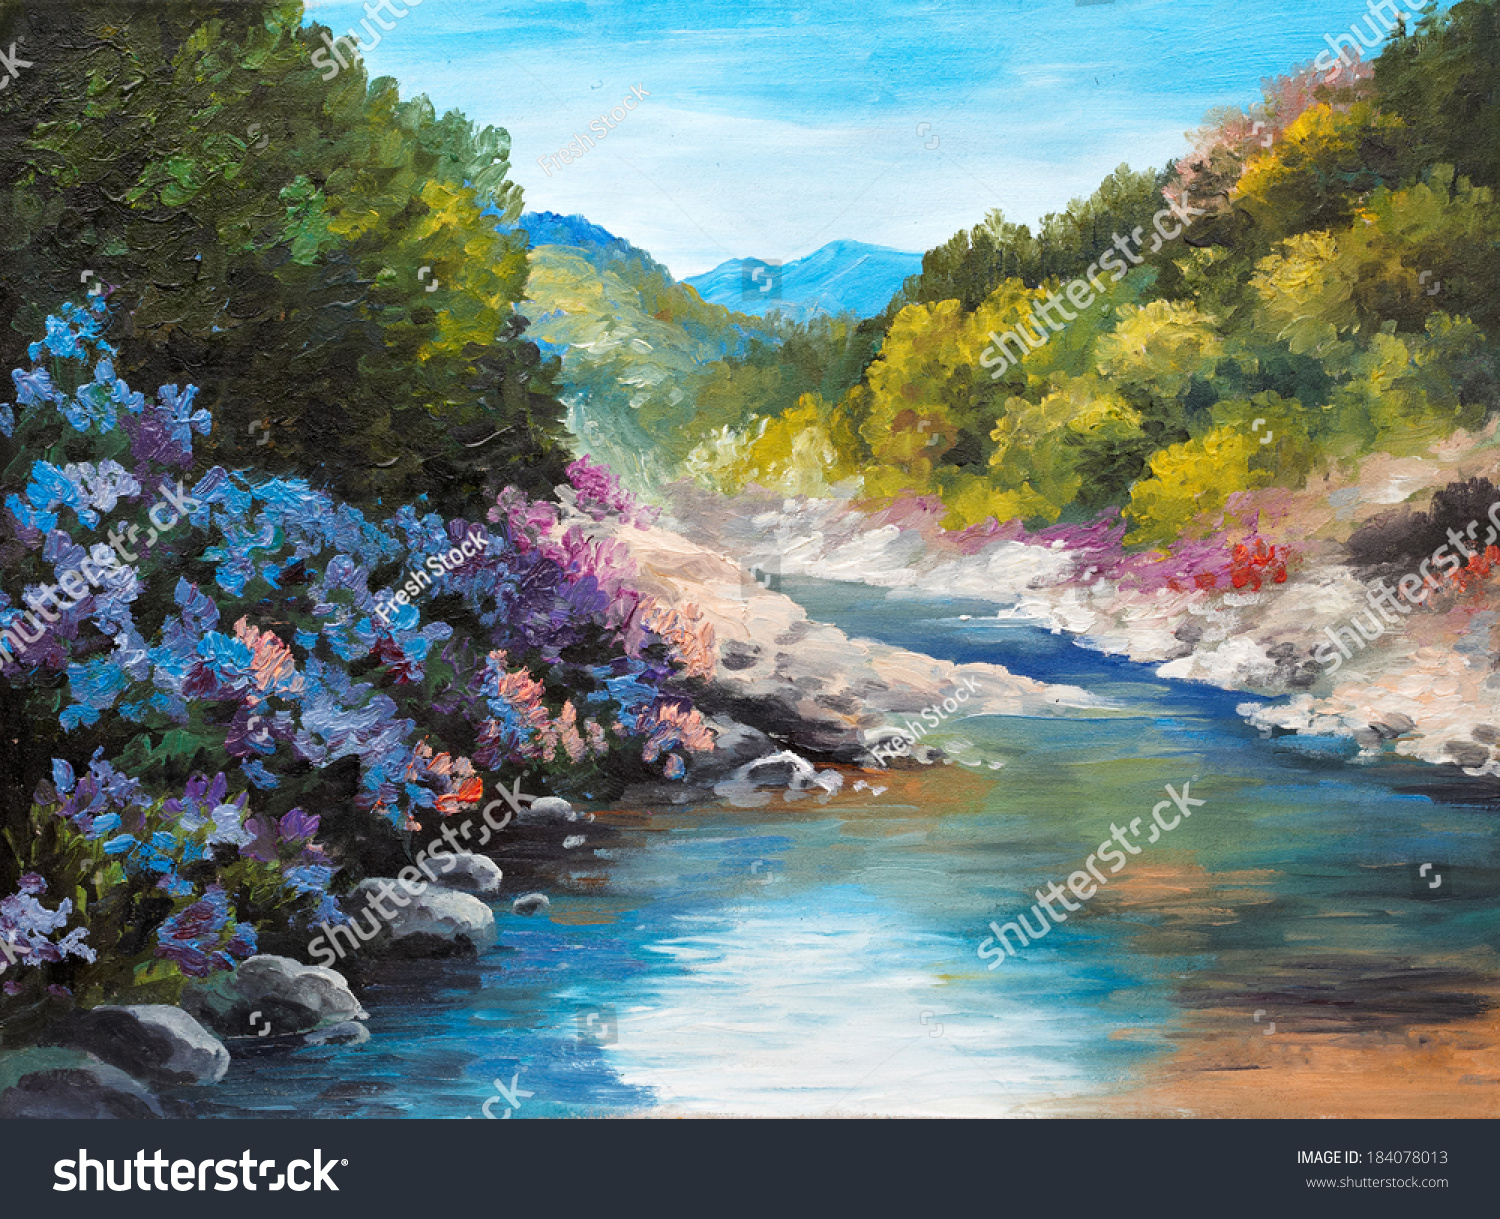 Mountain River, Flowers Near The Rocks